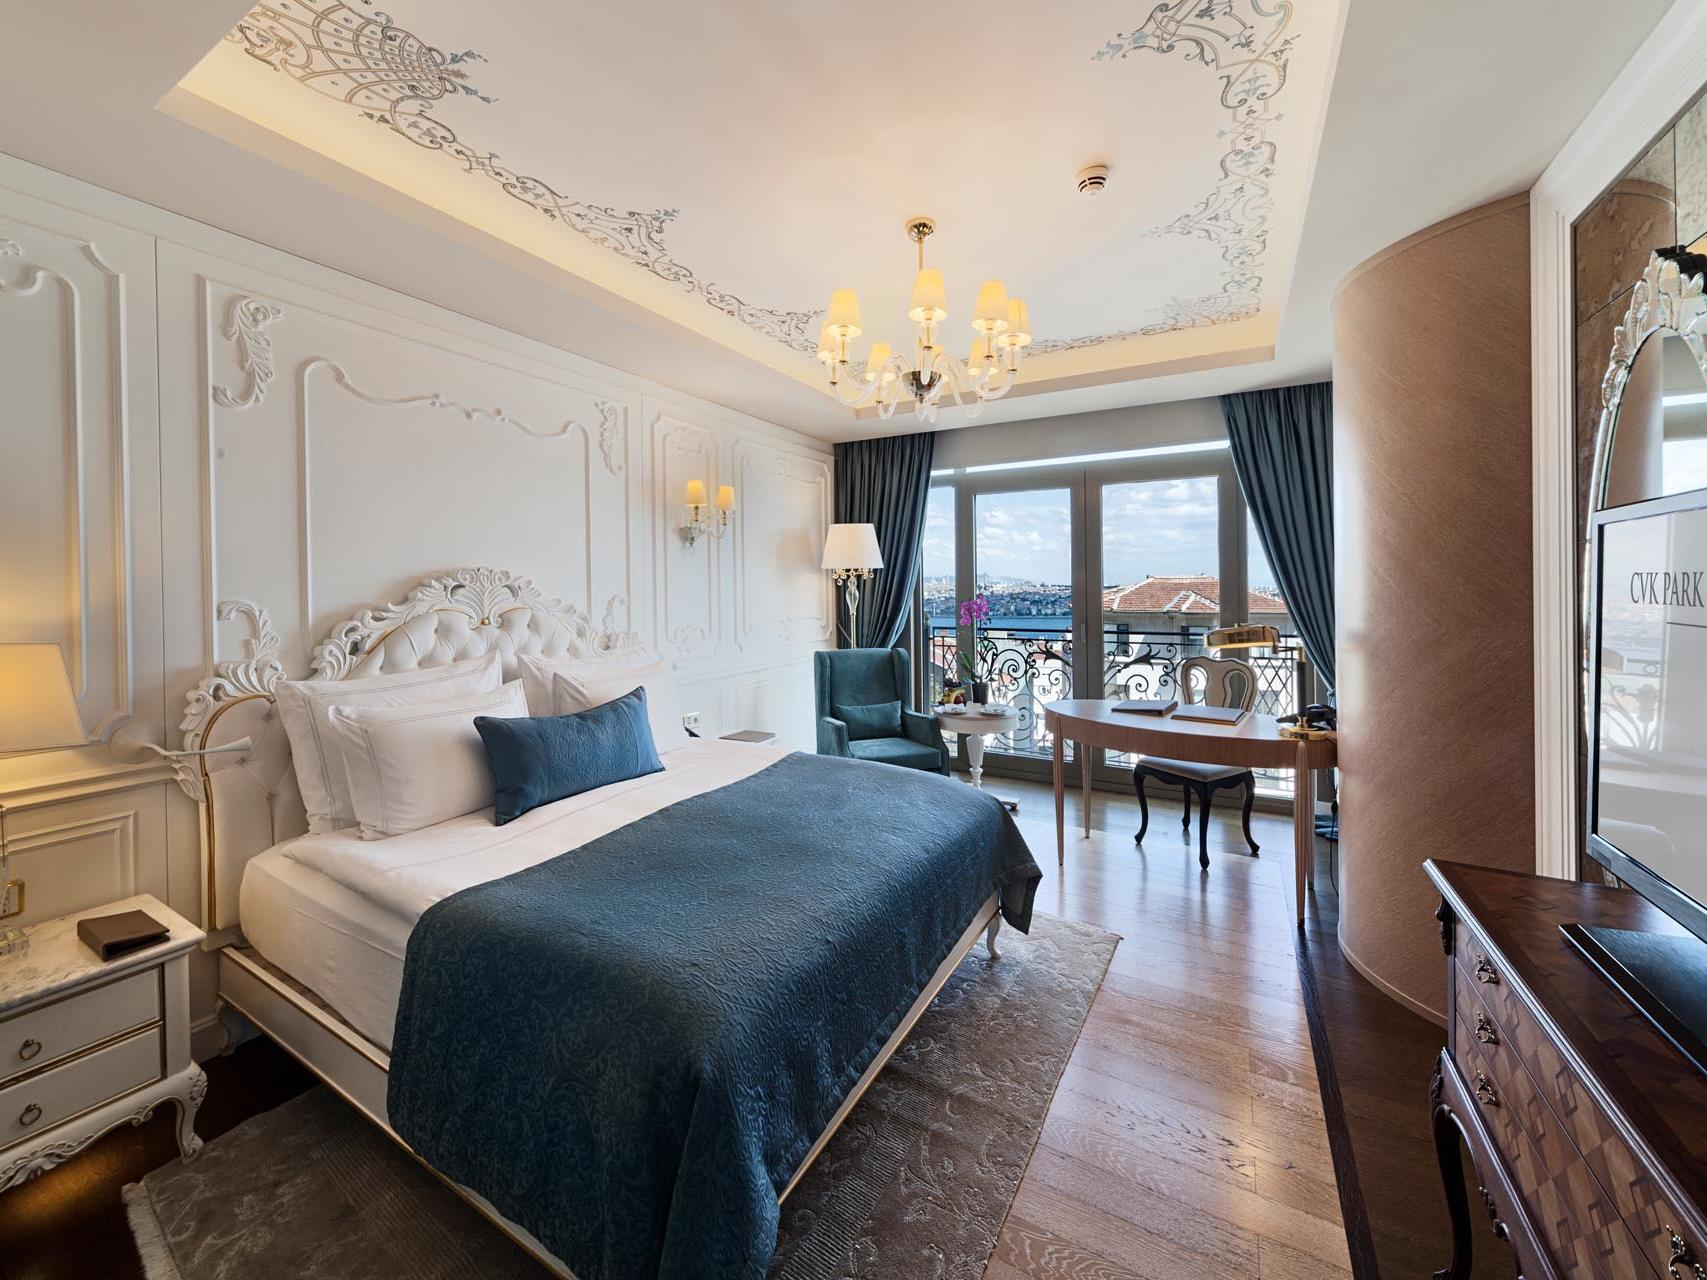 Superior room at CVK Hotels in Istanbul